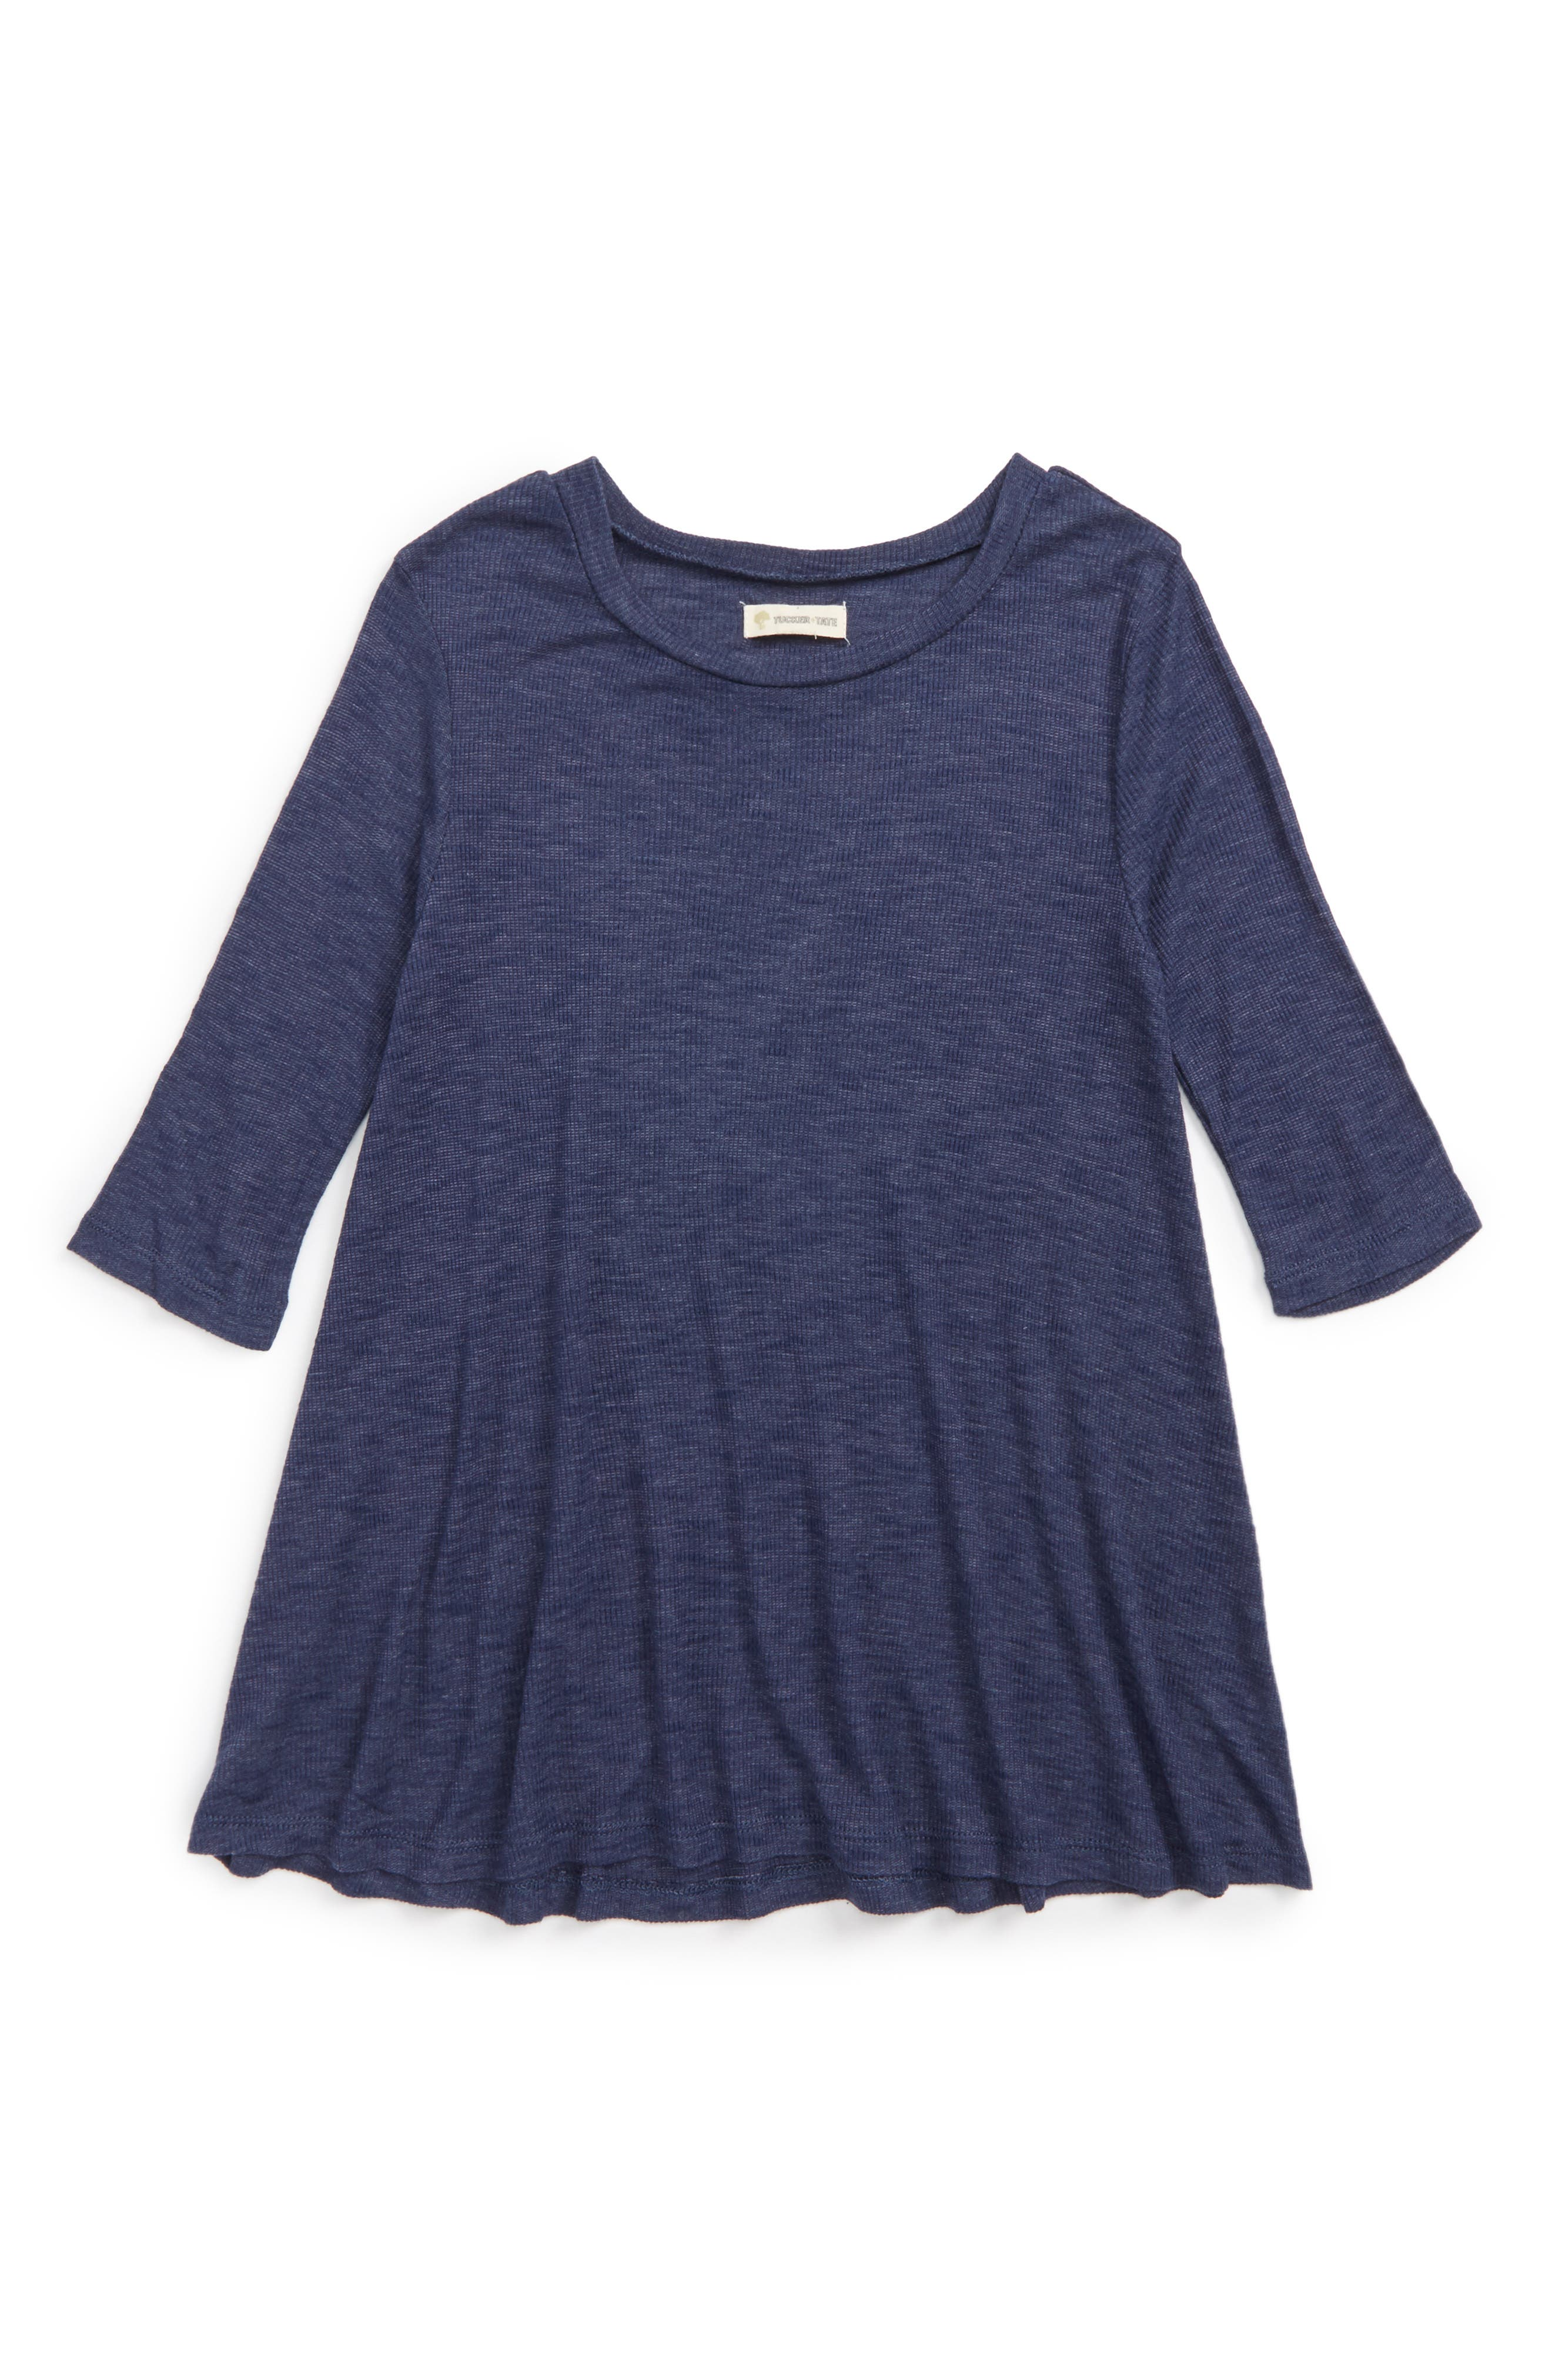 Thermal Tee,                         Main,                         color, 410